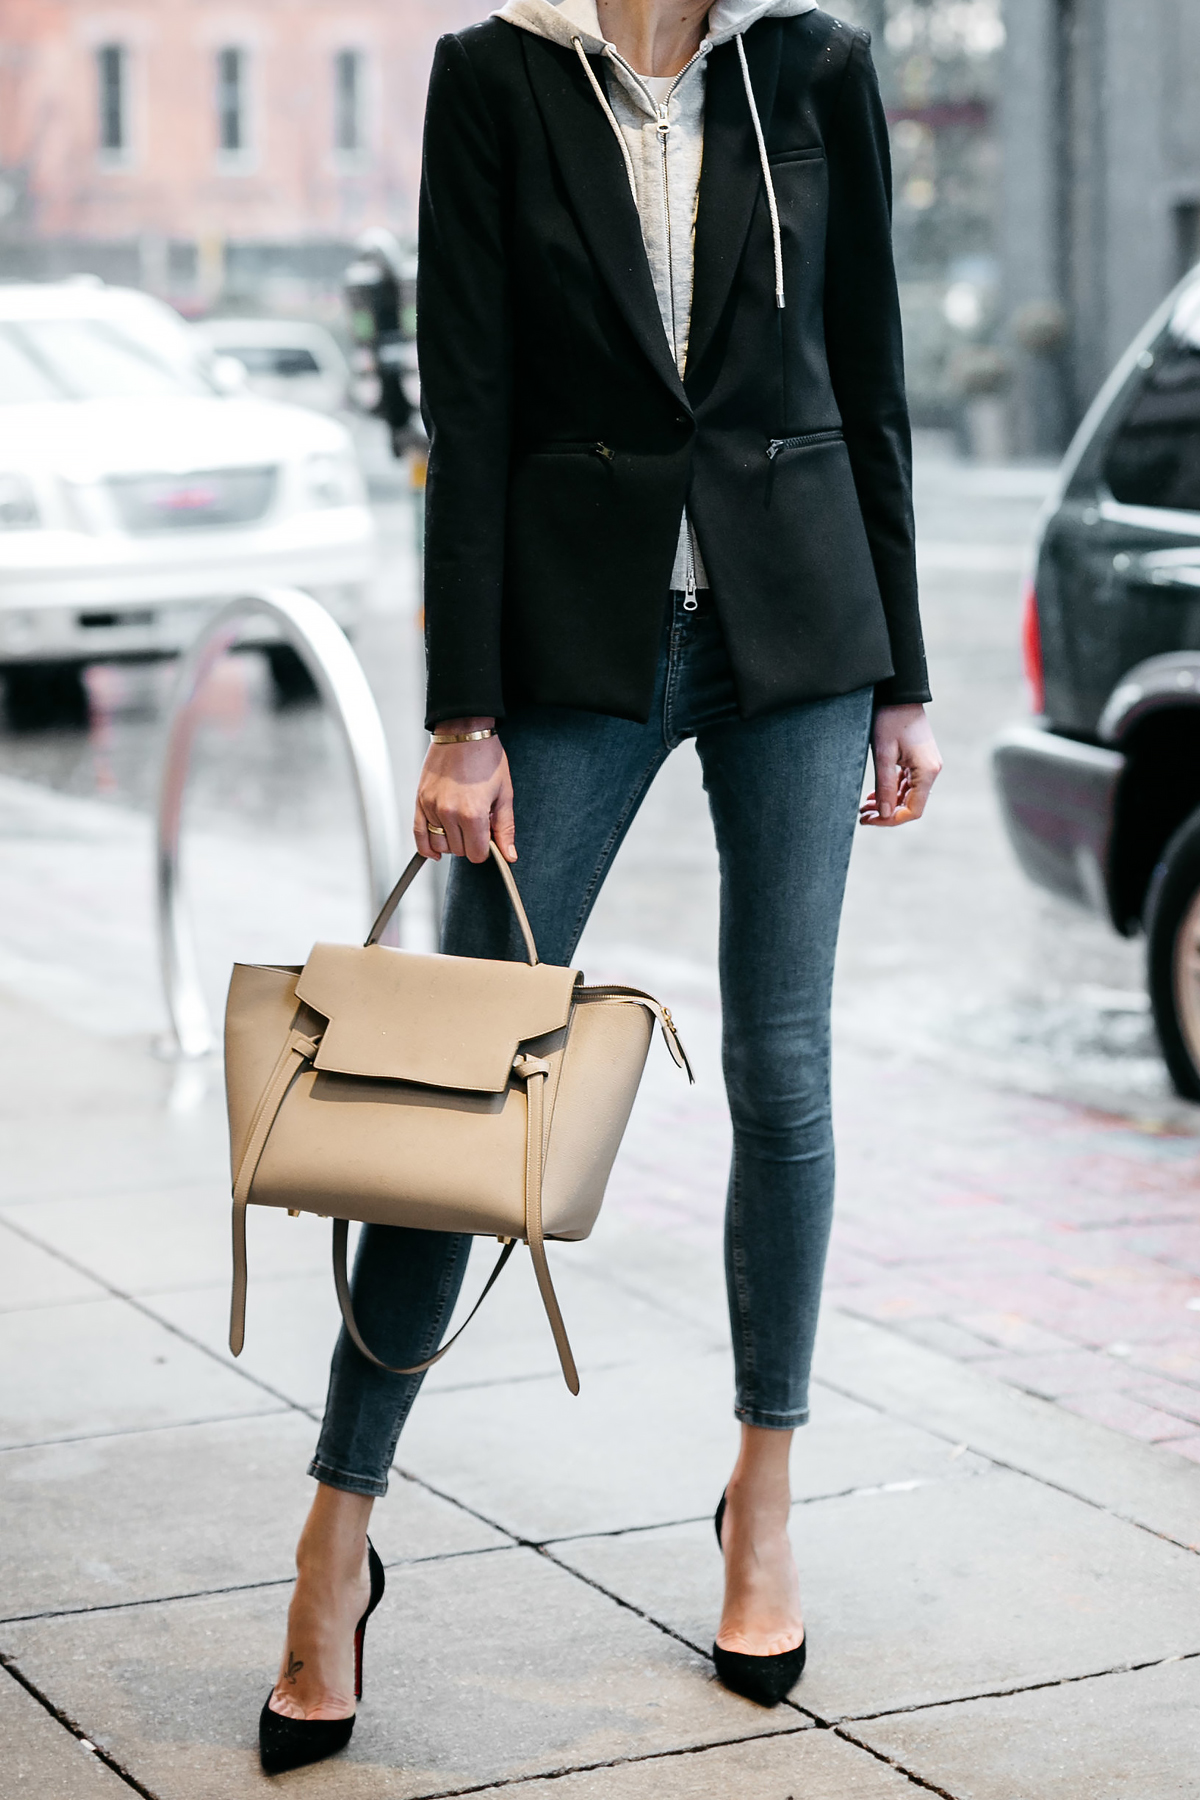 Woman Wearing Veronica Beard Scuba Jacket Topshop Skinny Jeans Black Christian Louboutin Pumps Celine Mini Belt Bag Fashion Jackson Dallas Blogger Fashion Blogger Street Style